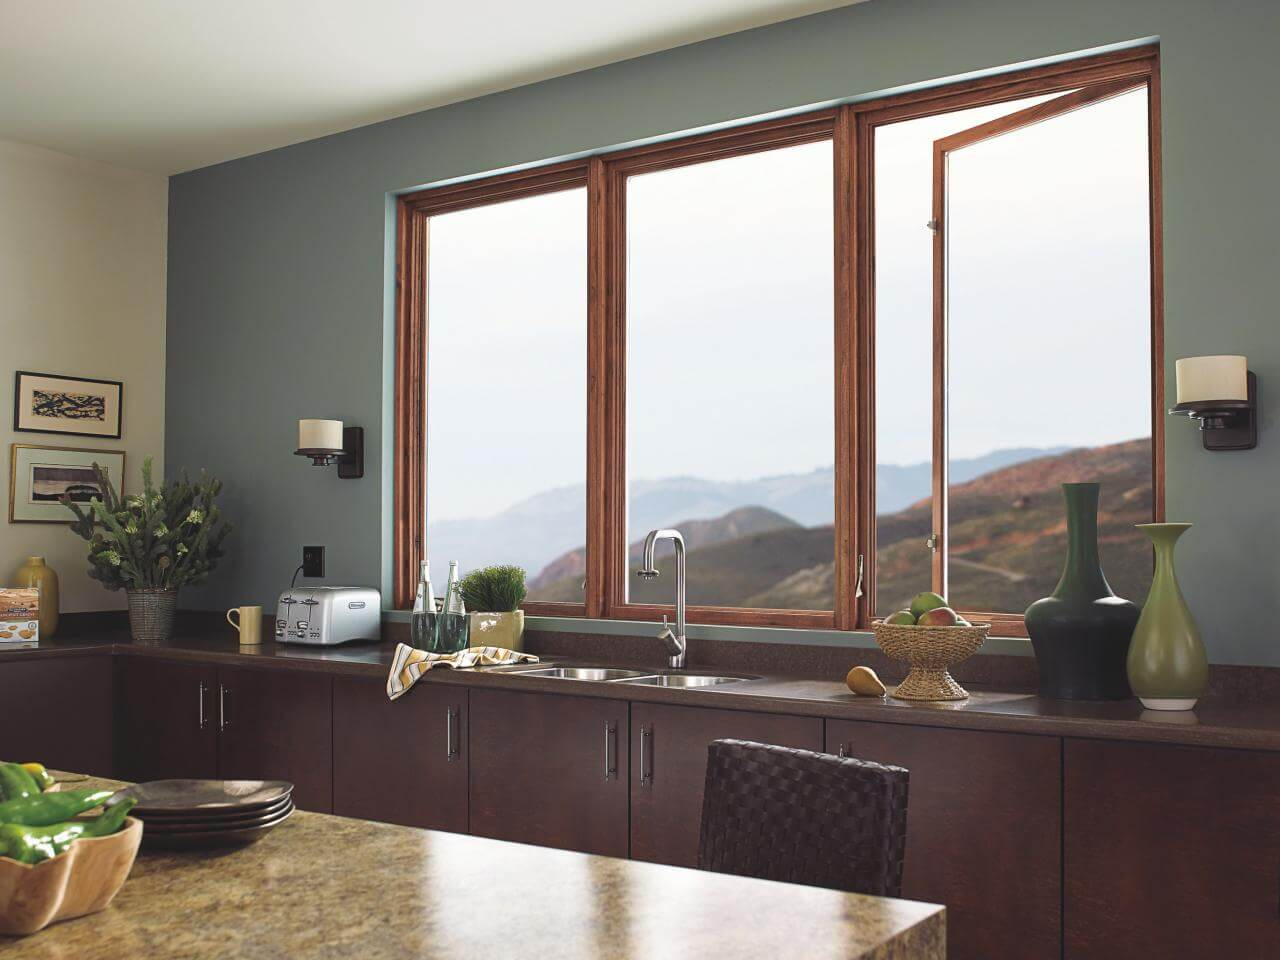 Energy efficient windows can make your home much more affordable.